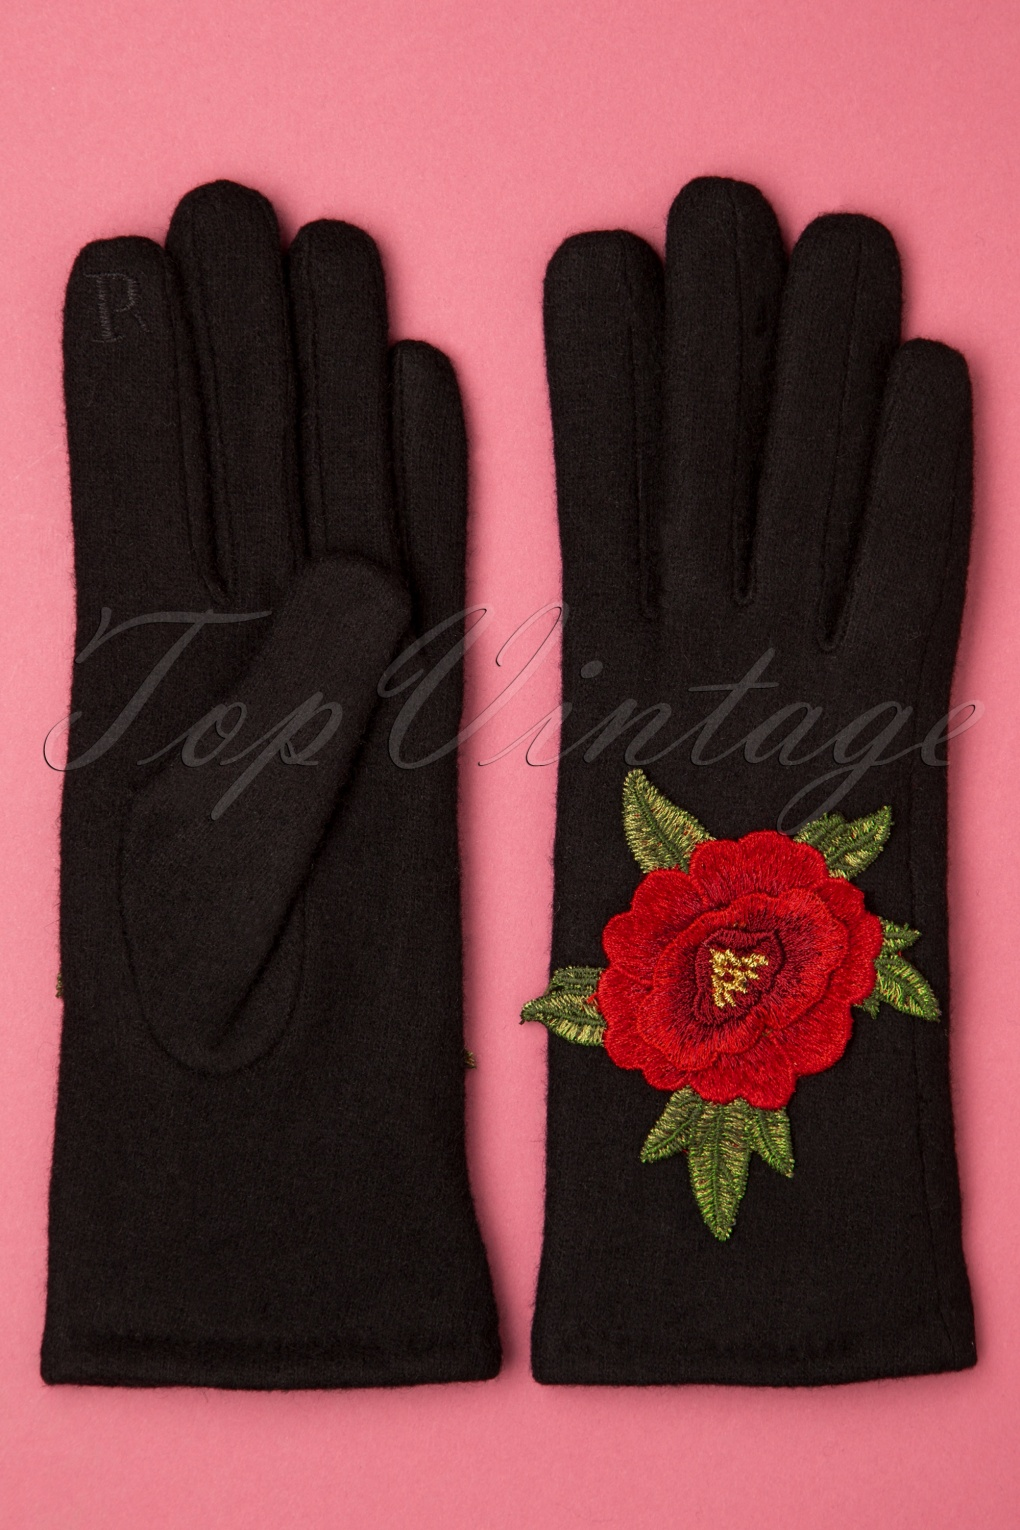 Vintage Style Gloves- Long, Wrist, Evening, Day, Leather, Lace 60s Christina Flower Wool Gloves in Black £22.40 AT vintagedancer.com